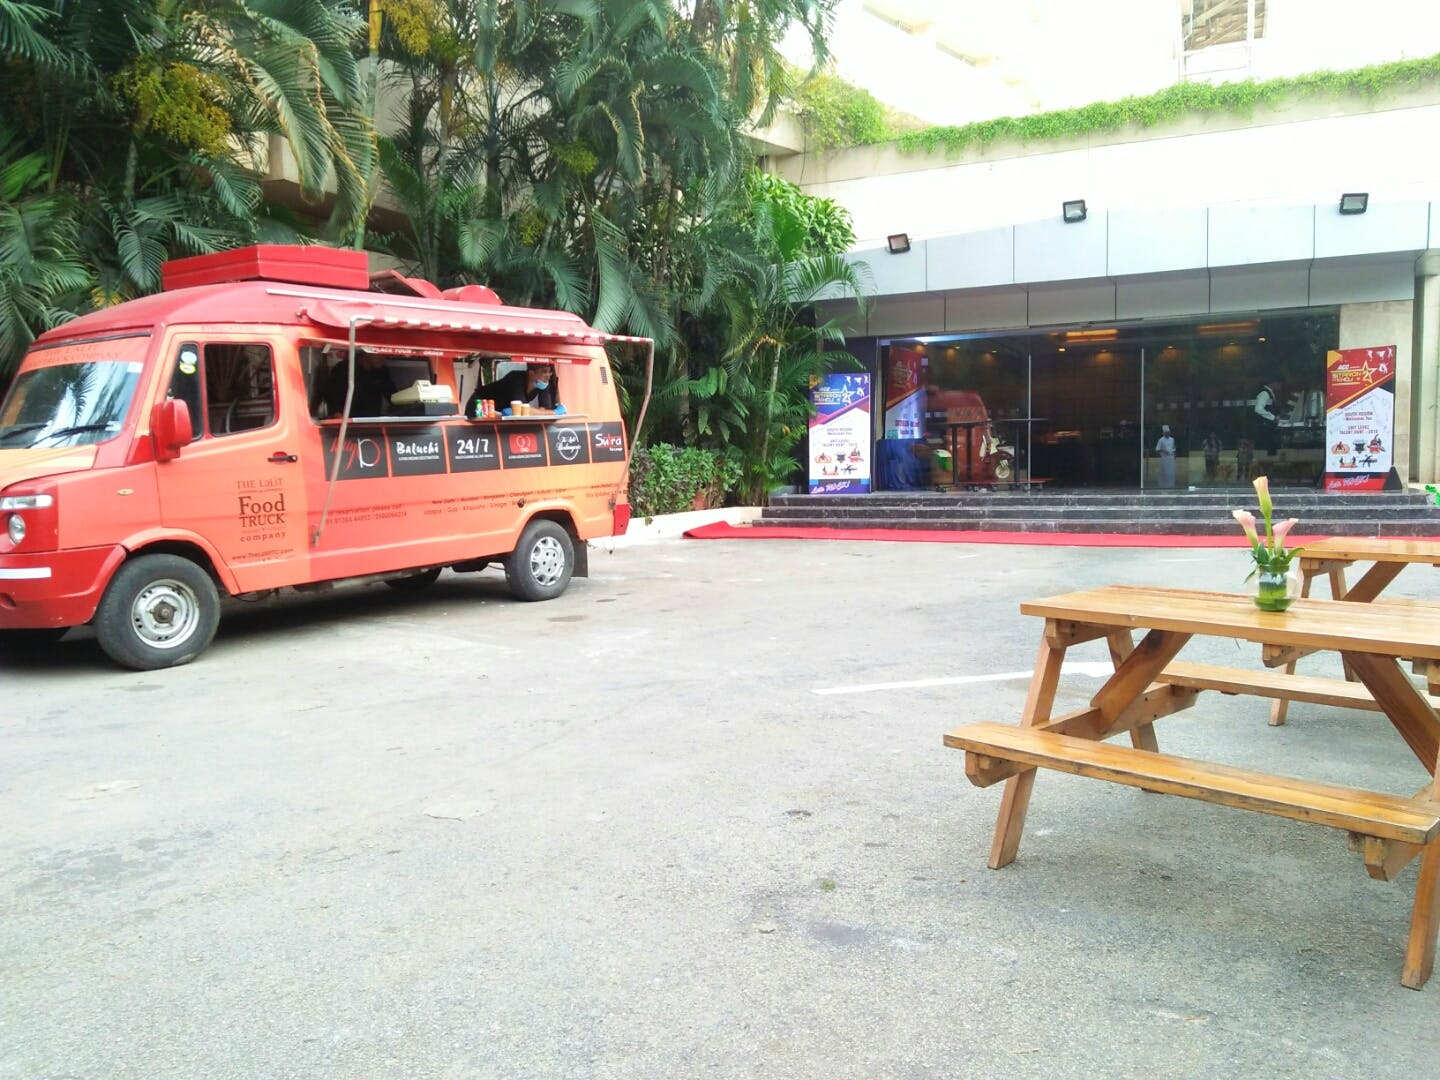 image - The Lalit Food Truck Company